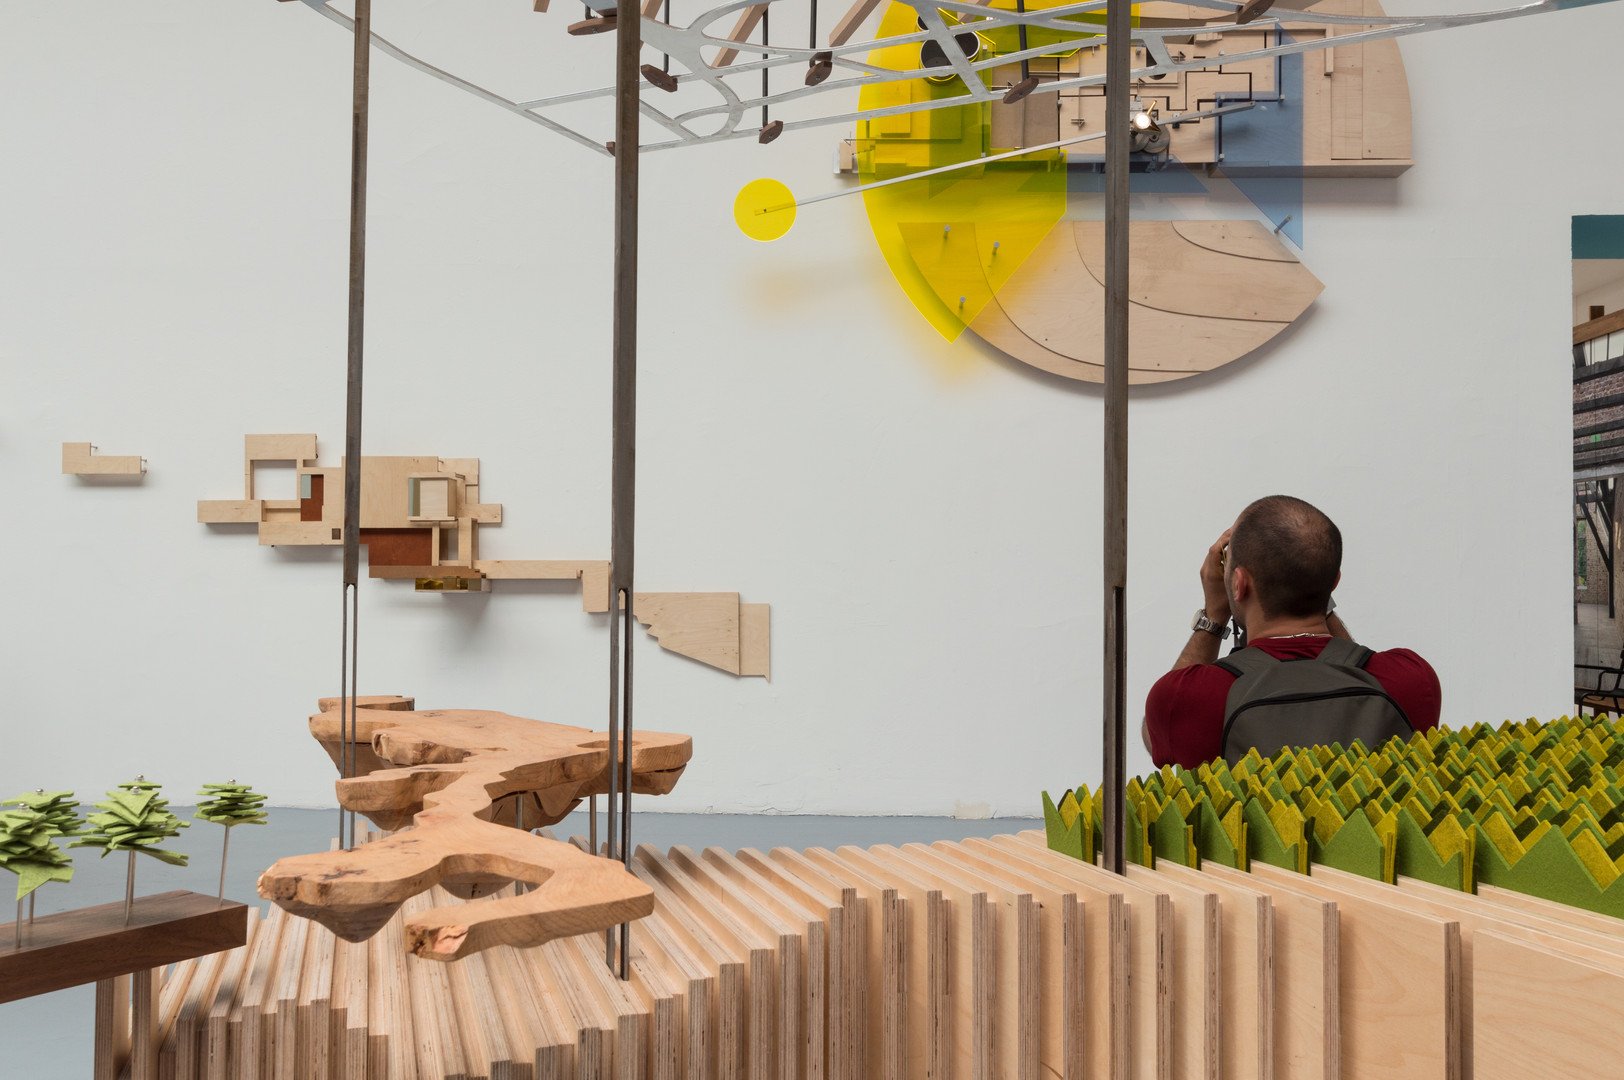 Man sitting on bench as part of pavilion by Bucholz McEvoy Architects at the Venice Biennale 2018